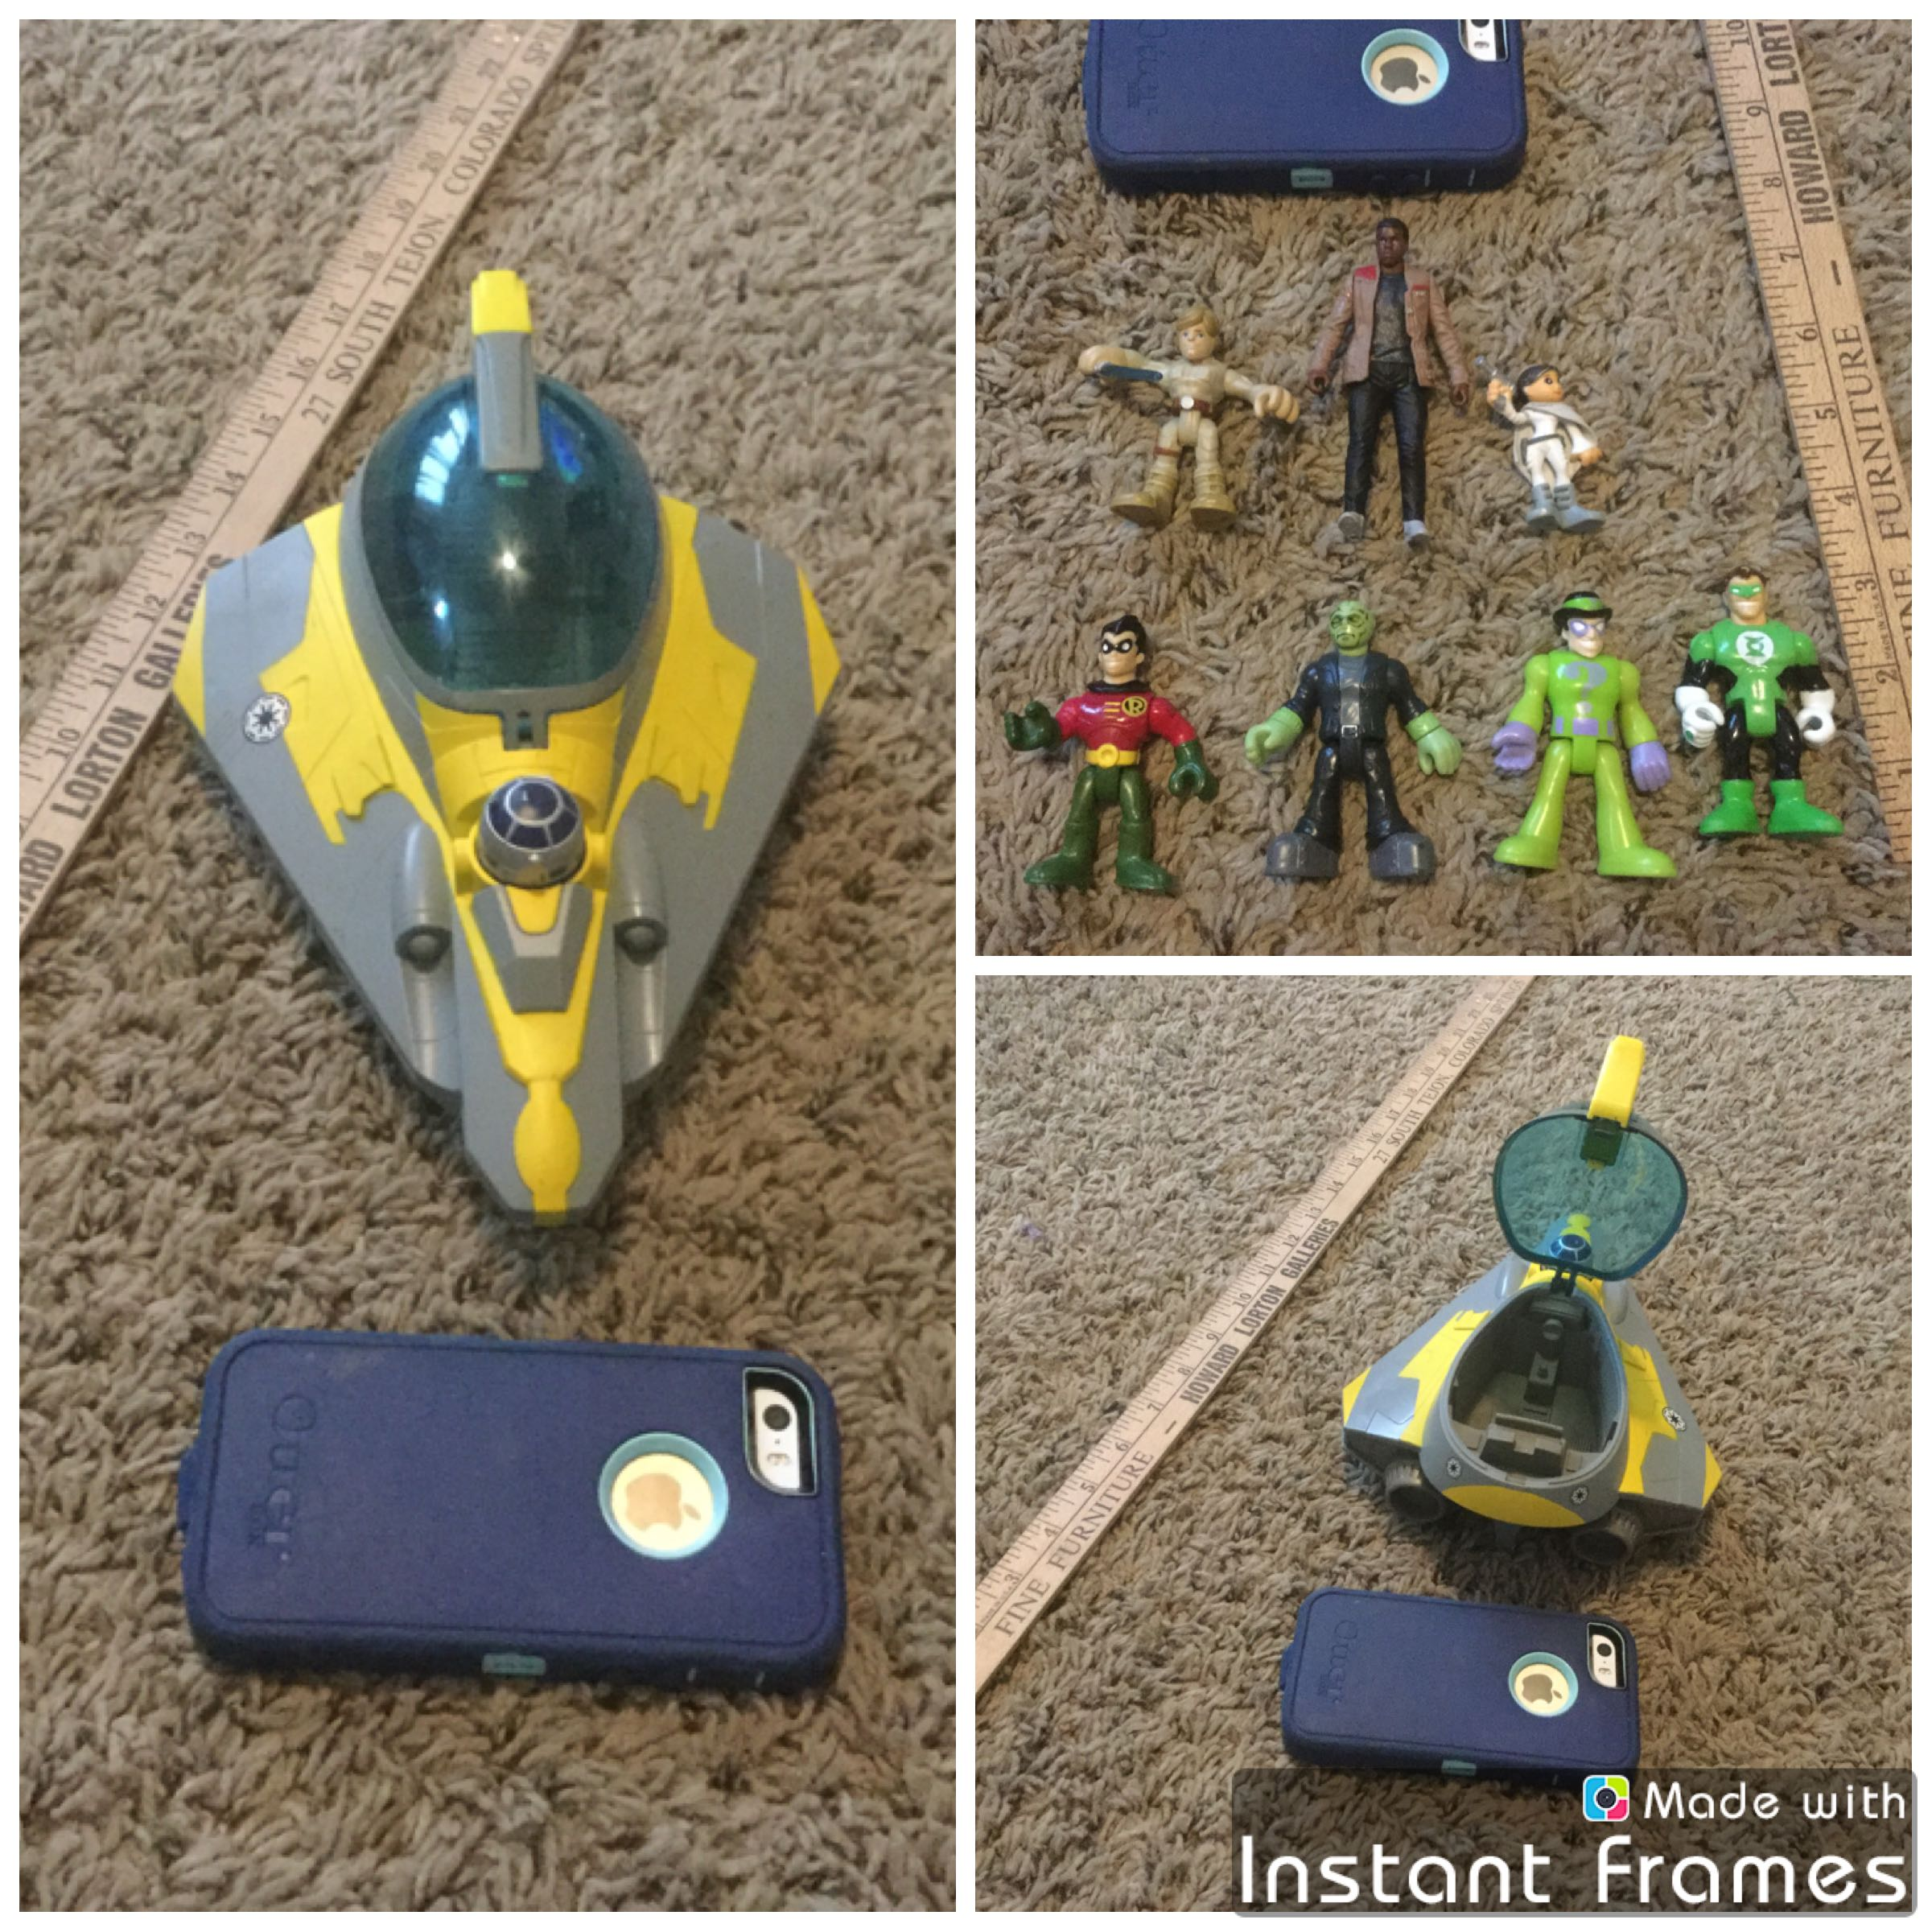 Action figures plus Star Wars ship that open to hold figure. Includes all 7 figures and ship for $6.00. Imaginext figures, Star Wars figures